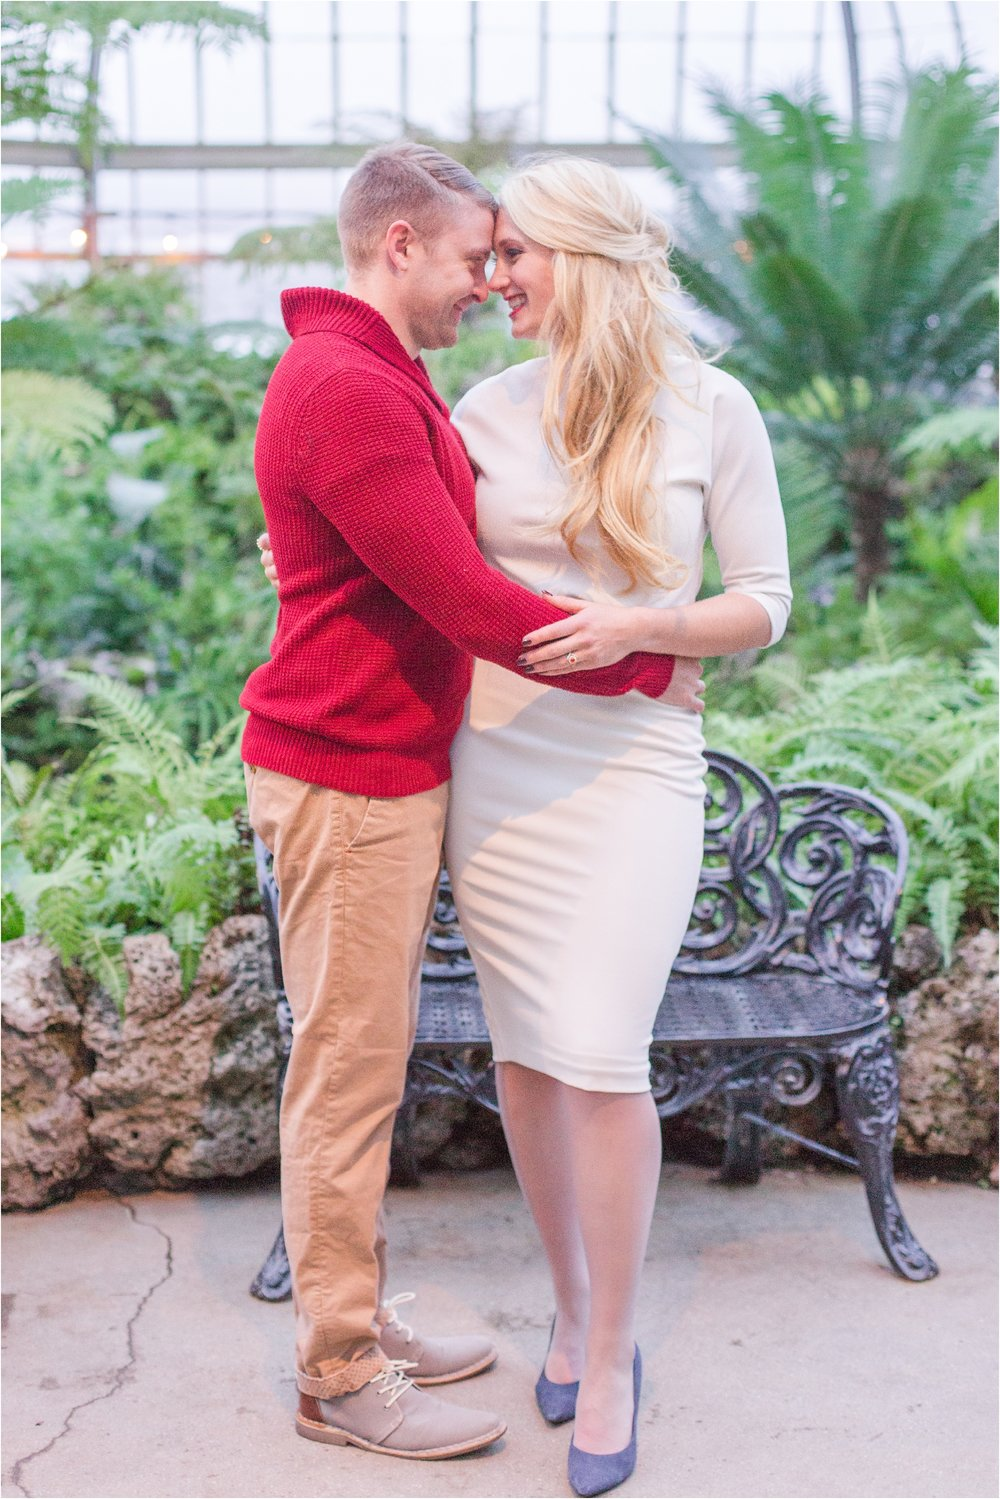 elegant-classic-belle-isle-conservatory-engagement-photos-in-detroit-mi-by-courtney-carolyn-photography_0026.jpg